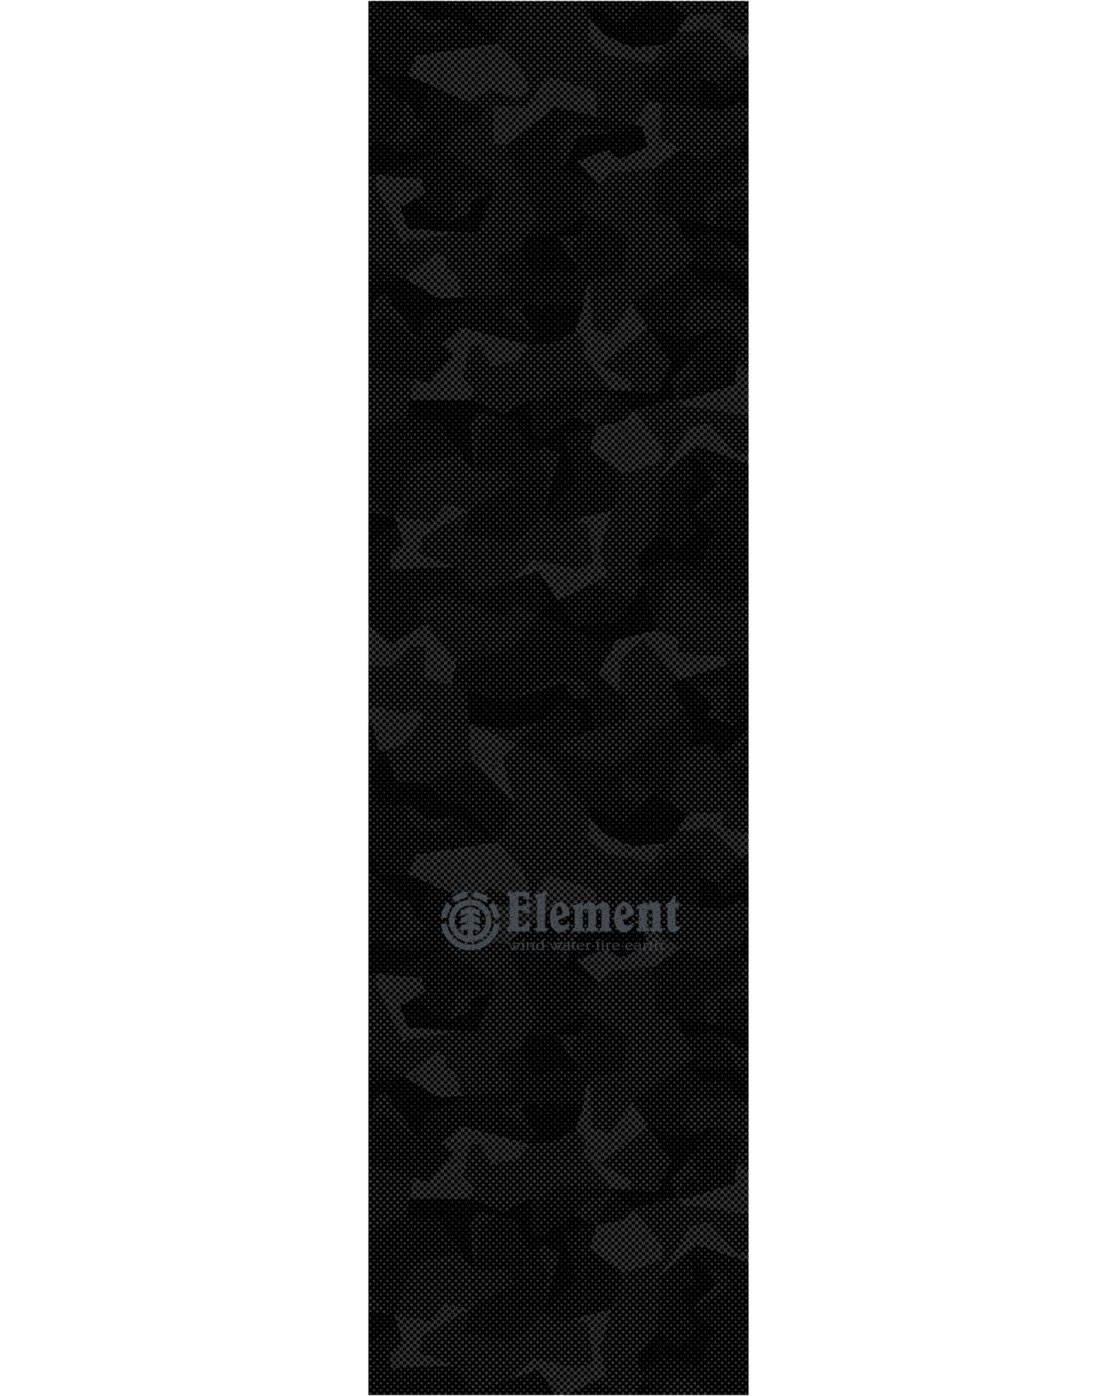 "2 9"" x 33"" Resist Camo Grip Tape Multicolor ACGT3CRS Element"